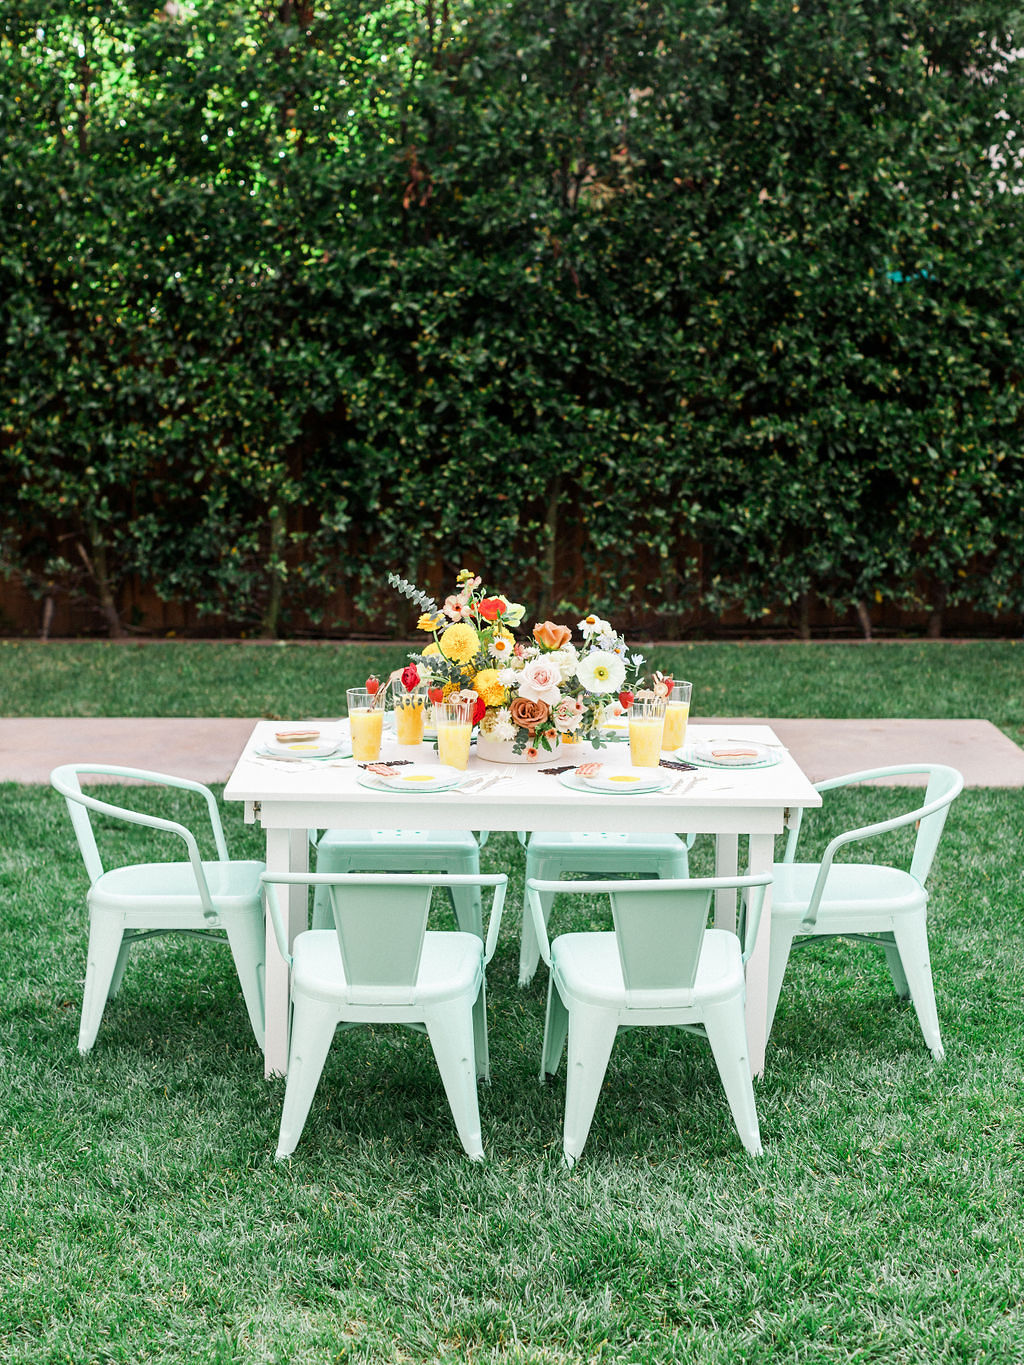 Tablescape from Kids Birthday Brunch Styled by Deets & Things | Black Twine